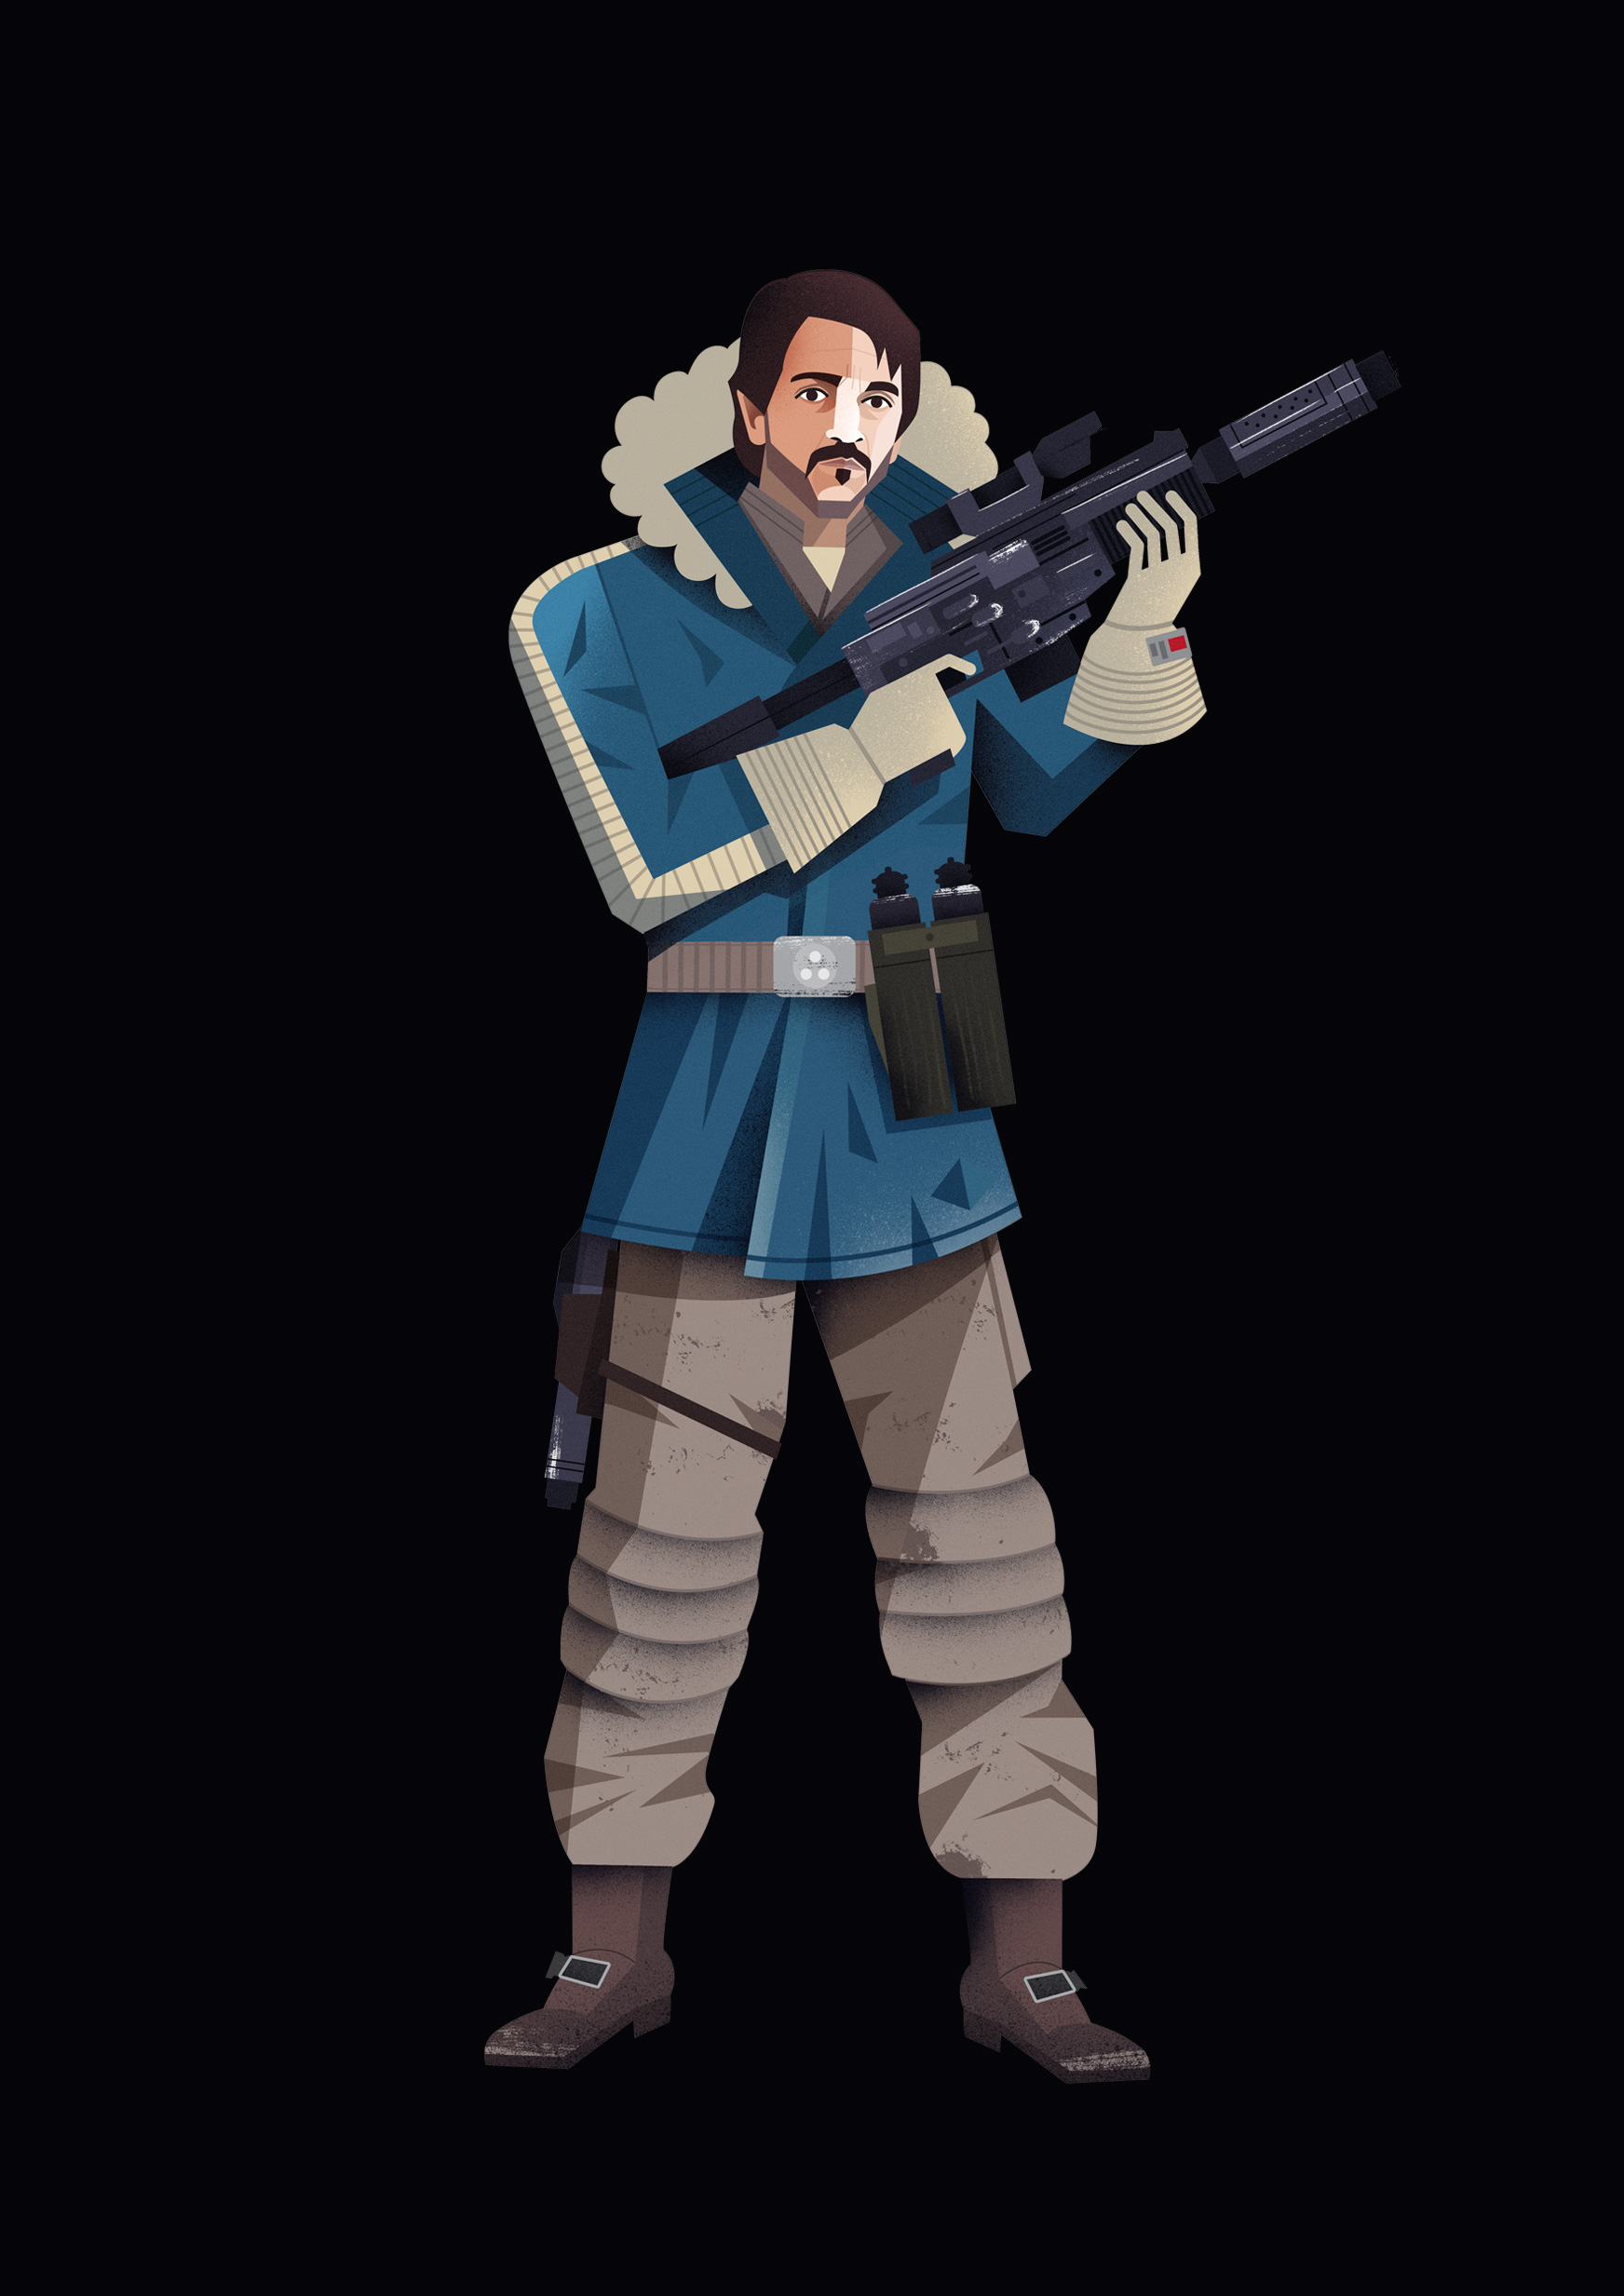 freelance illustrator dale edwin murray star wars rogue one disney complex illustration cassian andor